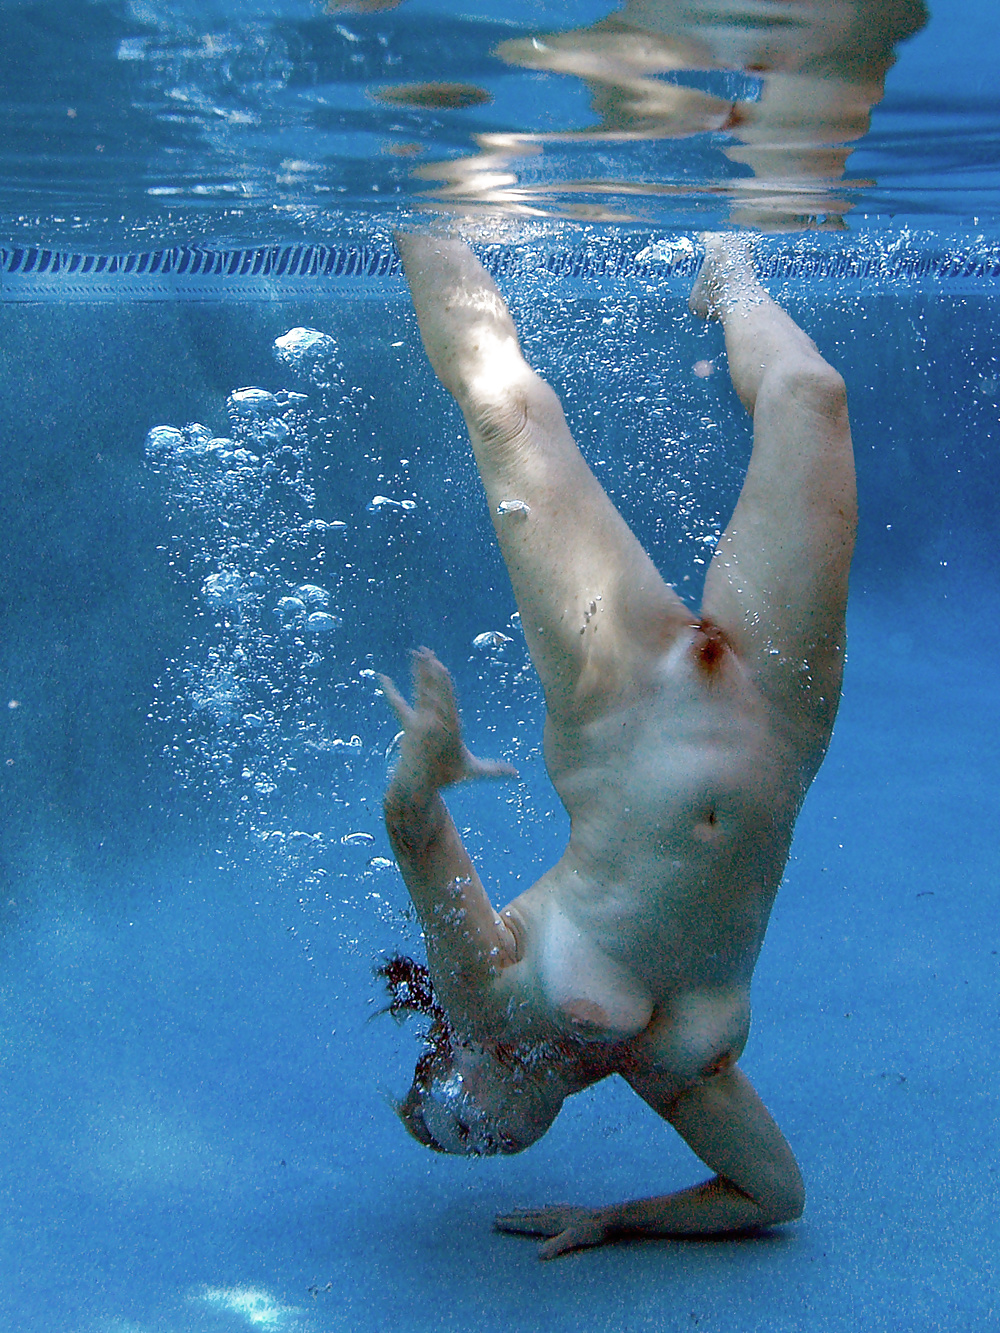 boob-websites-naked-lady-swimming-embarrassing